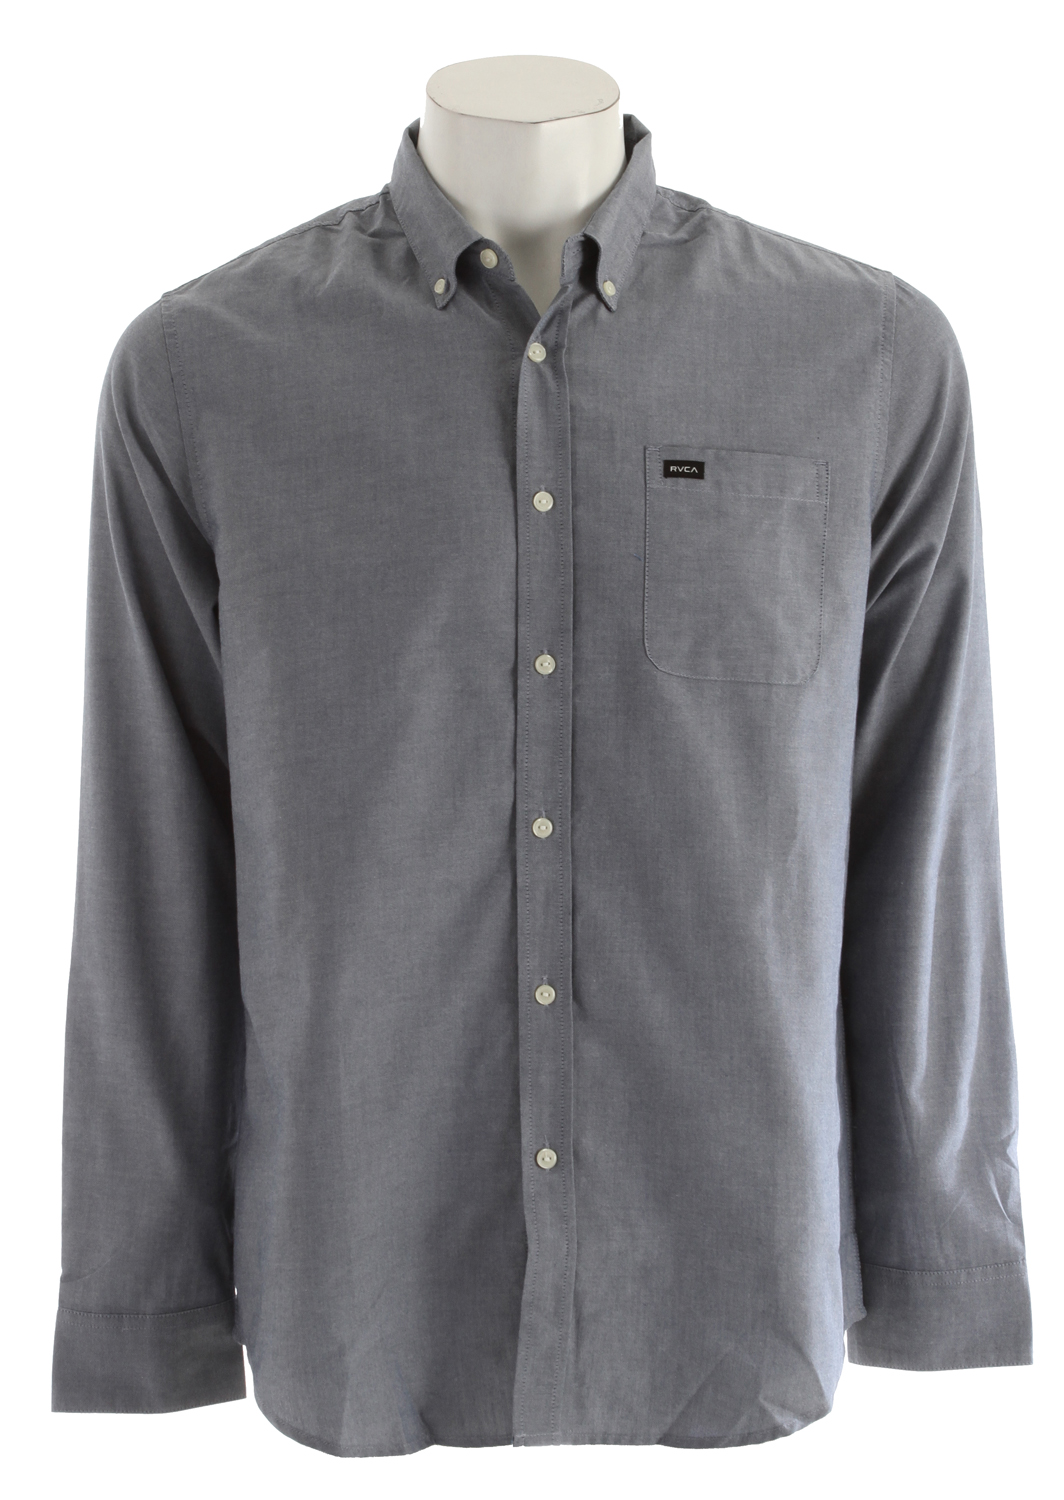 Key Features of the RVCA That'll Do Oxford L/S Shirt: Slim fit 6-% cotton/40% polyester oxford Long sleeve woven button down shirt One patch pocket at left chest with RVCA solo label Buttons at collar points - $37.95